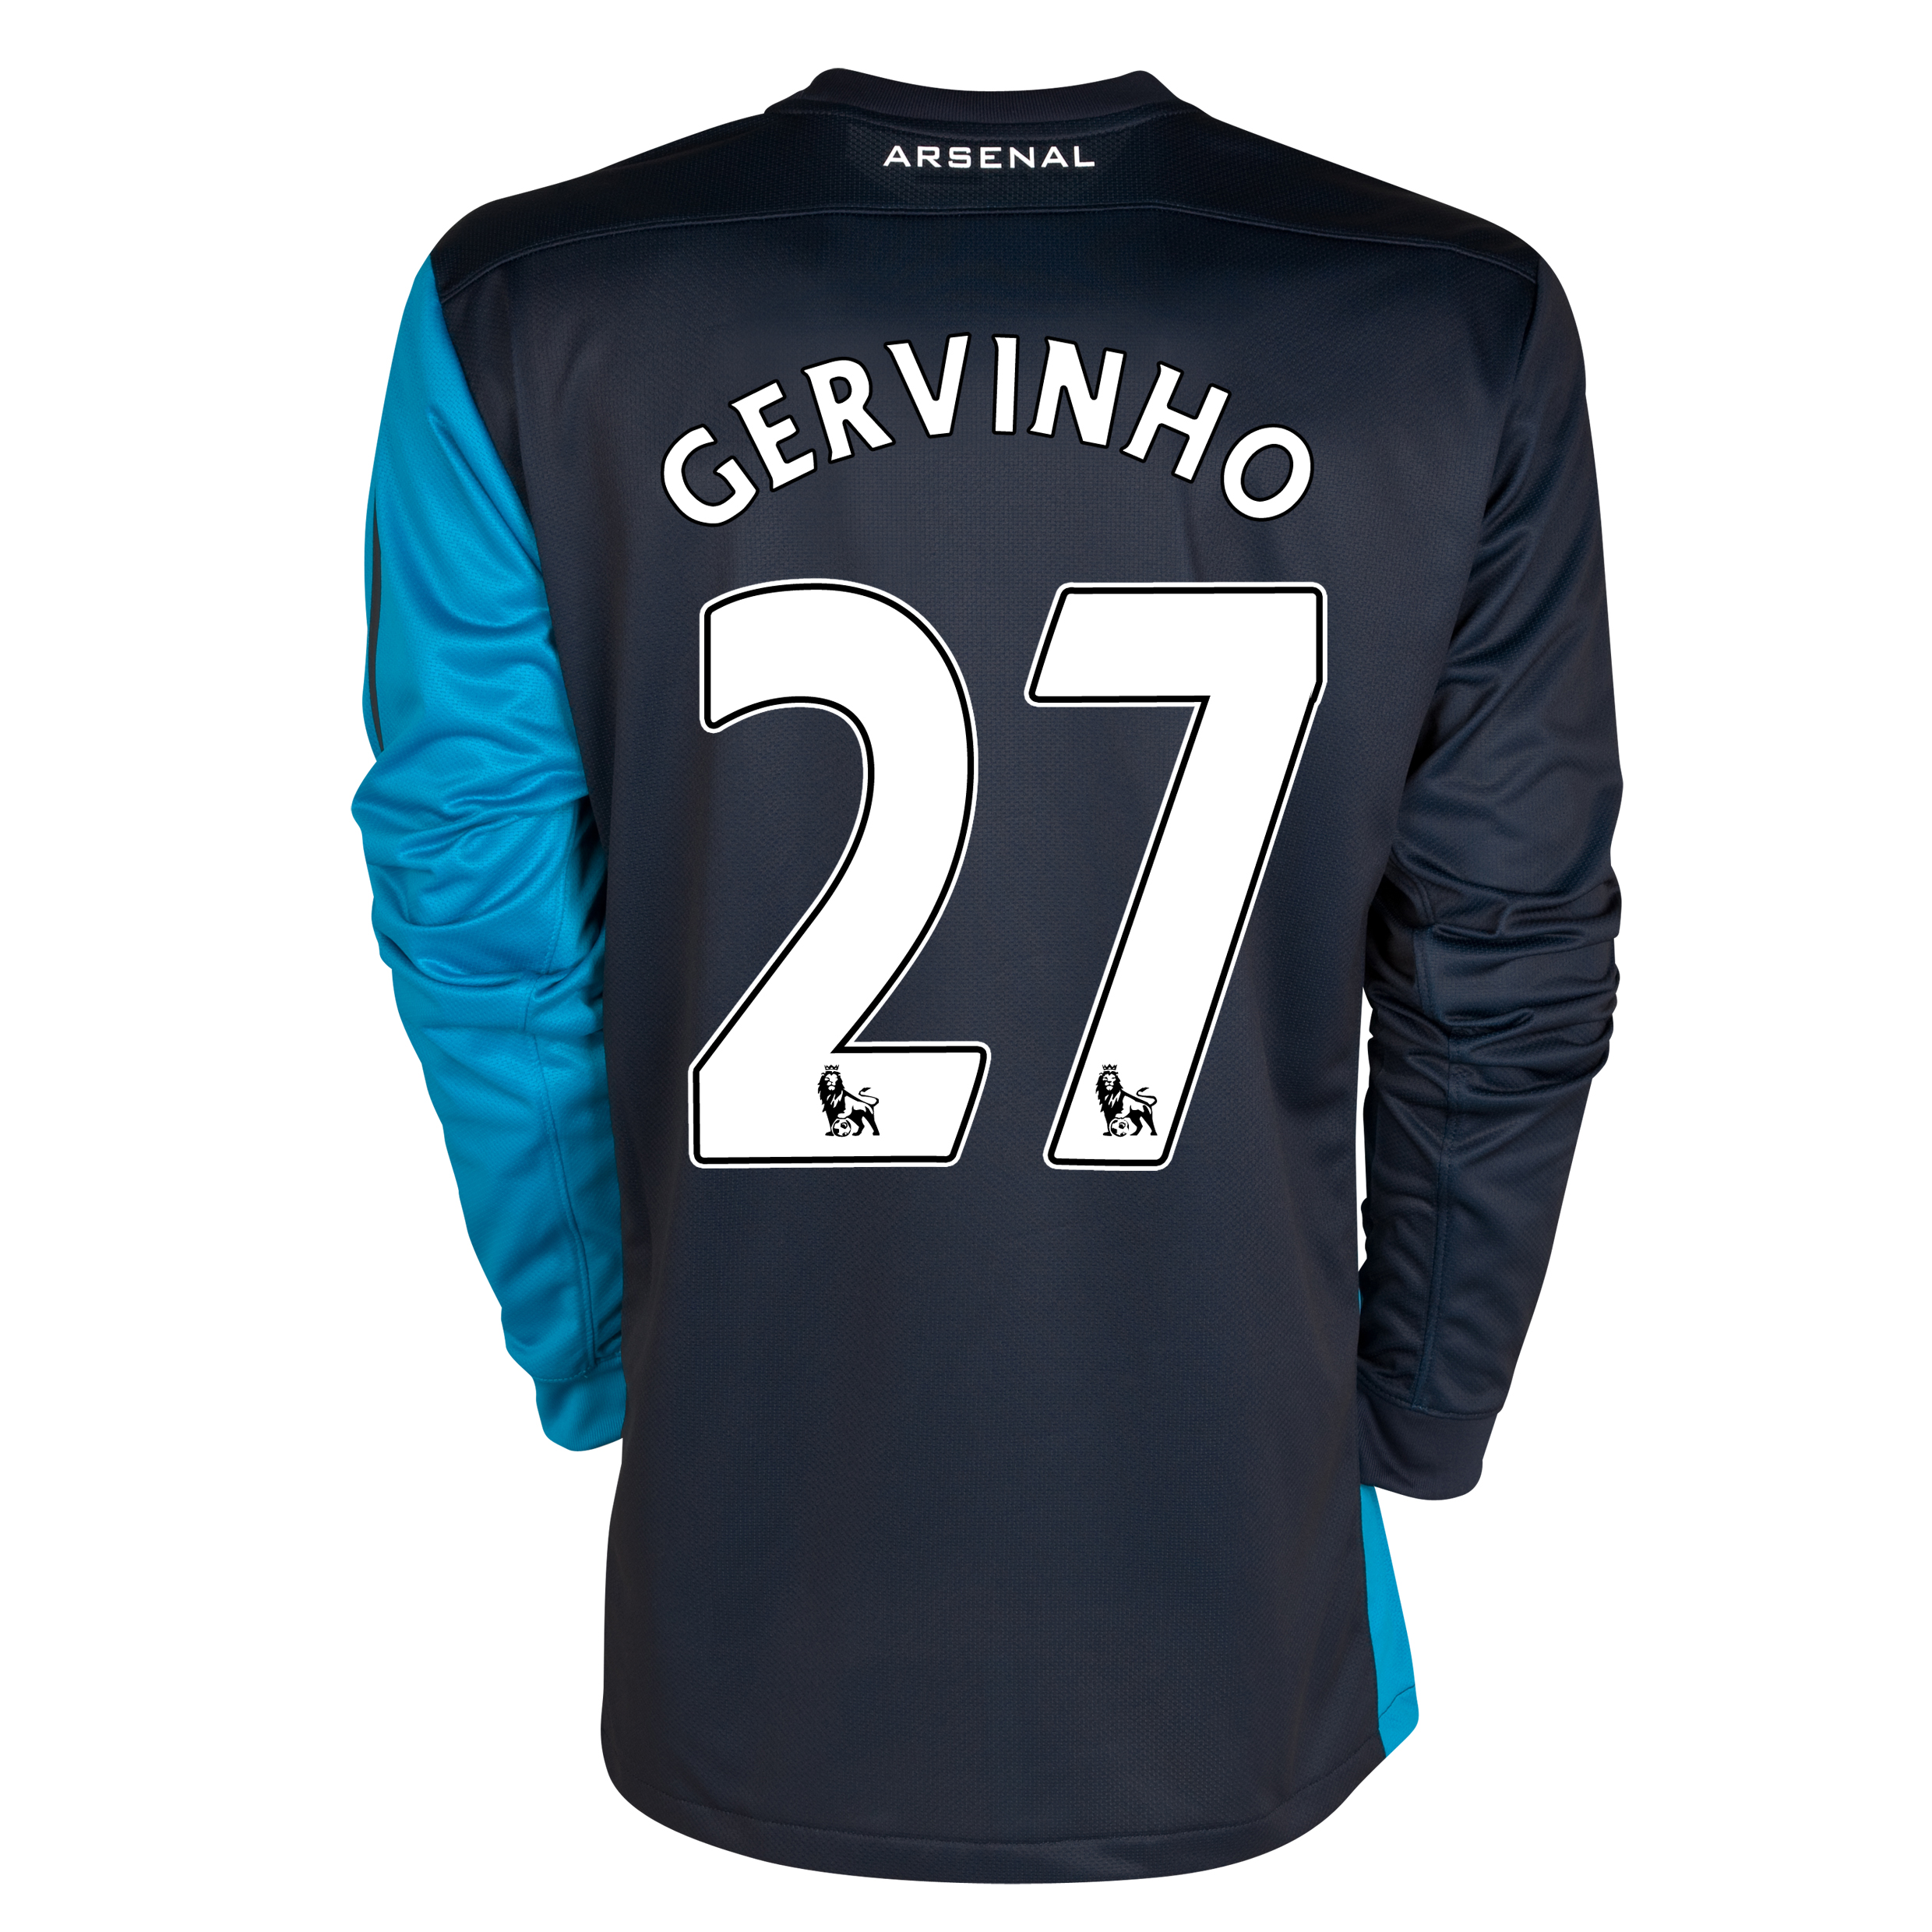 Arsenal Away Shirt 2011/12 - Long Sleeved - Kids with Gervinho 27 printing